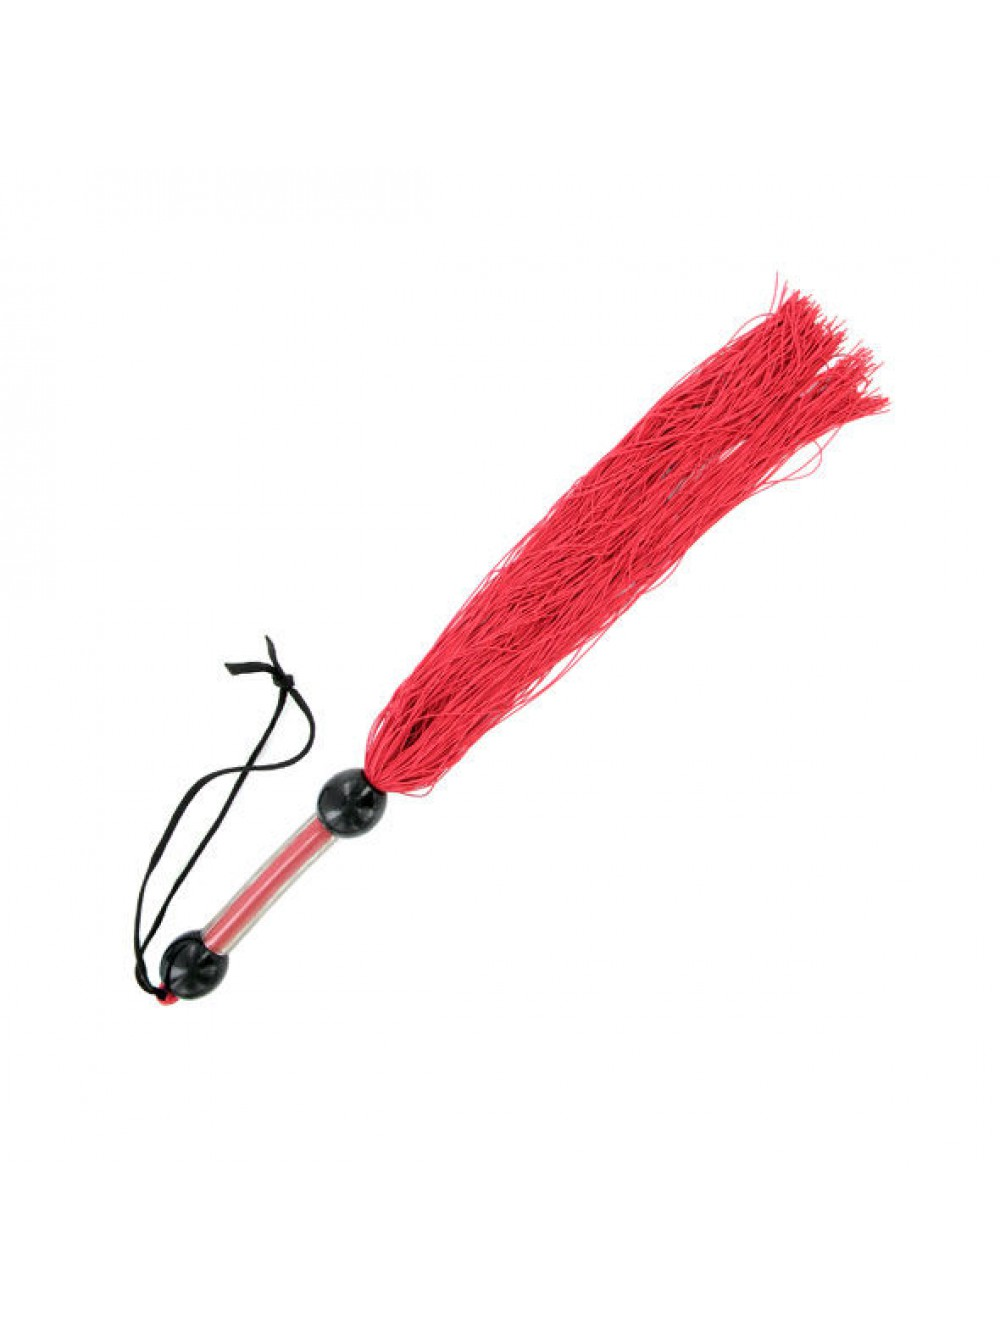 S&M MISCHIEF WHIPS MEDIUM RED 35CM